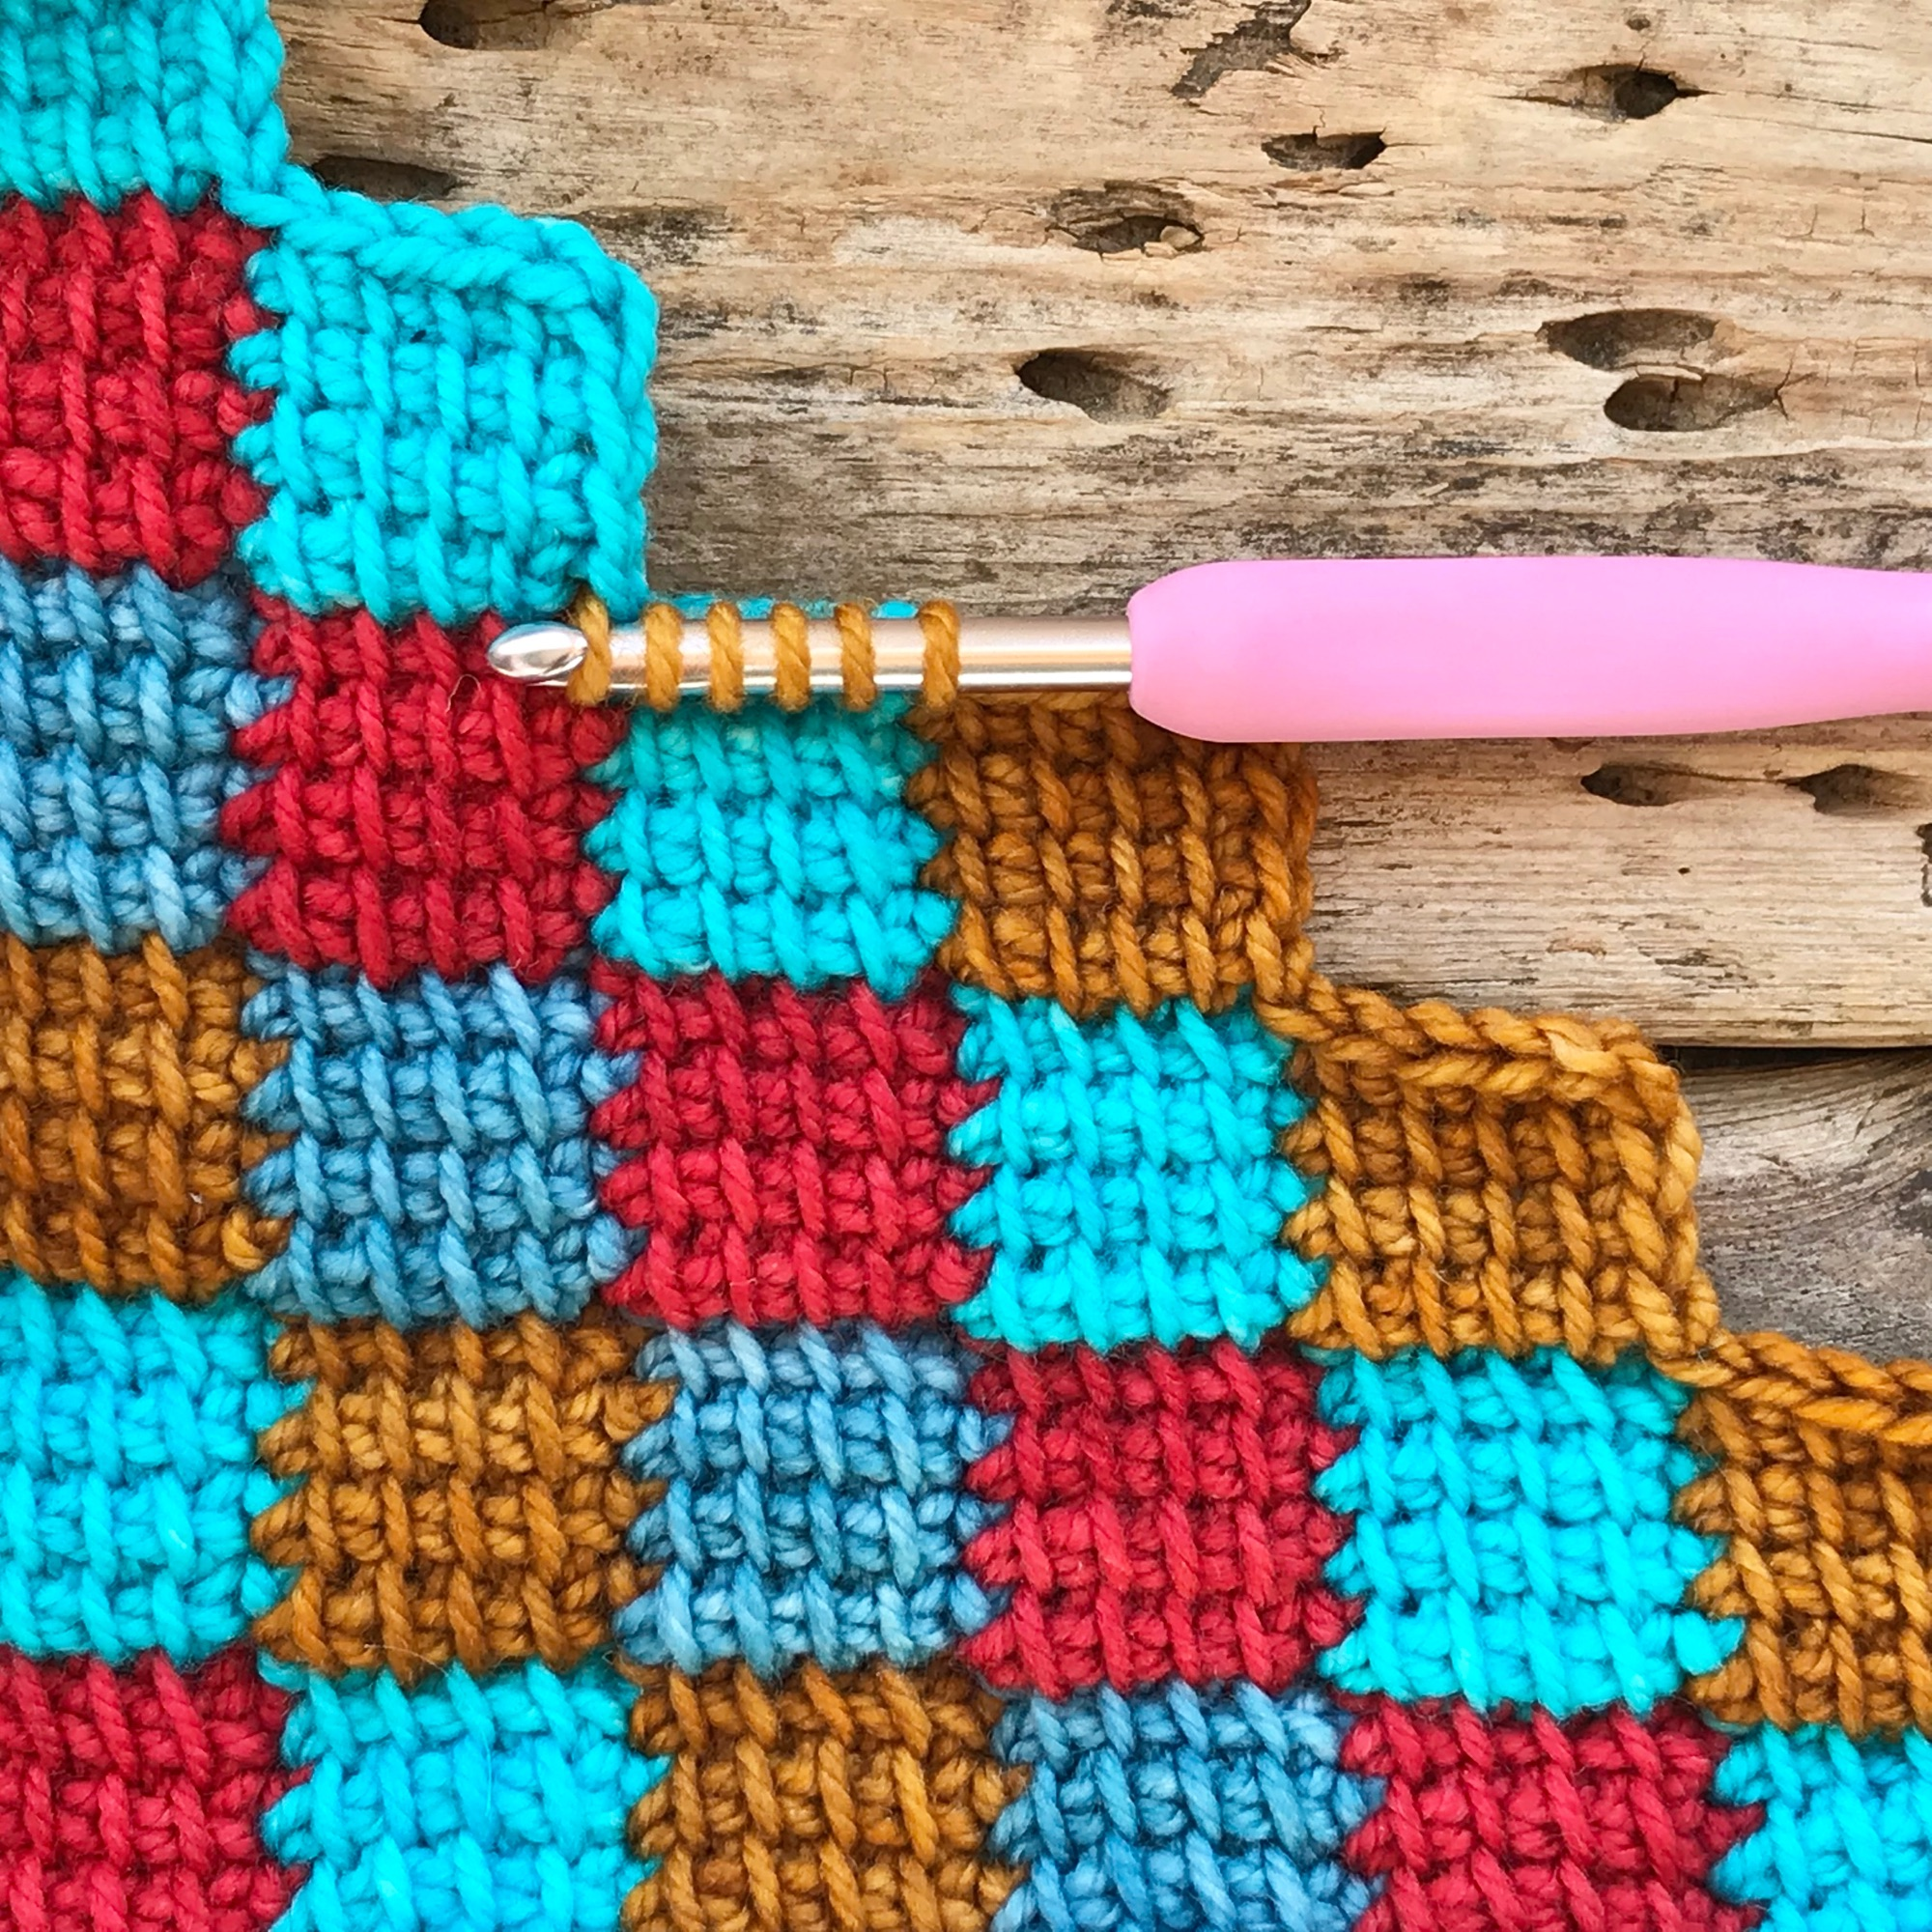 Entrelac Crochet Workshop With Coastal Crochet At Made And Making